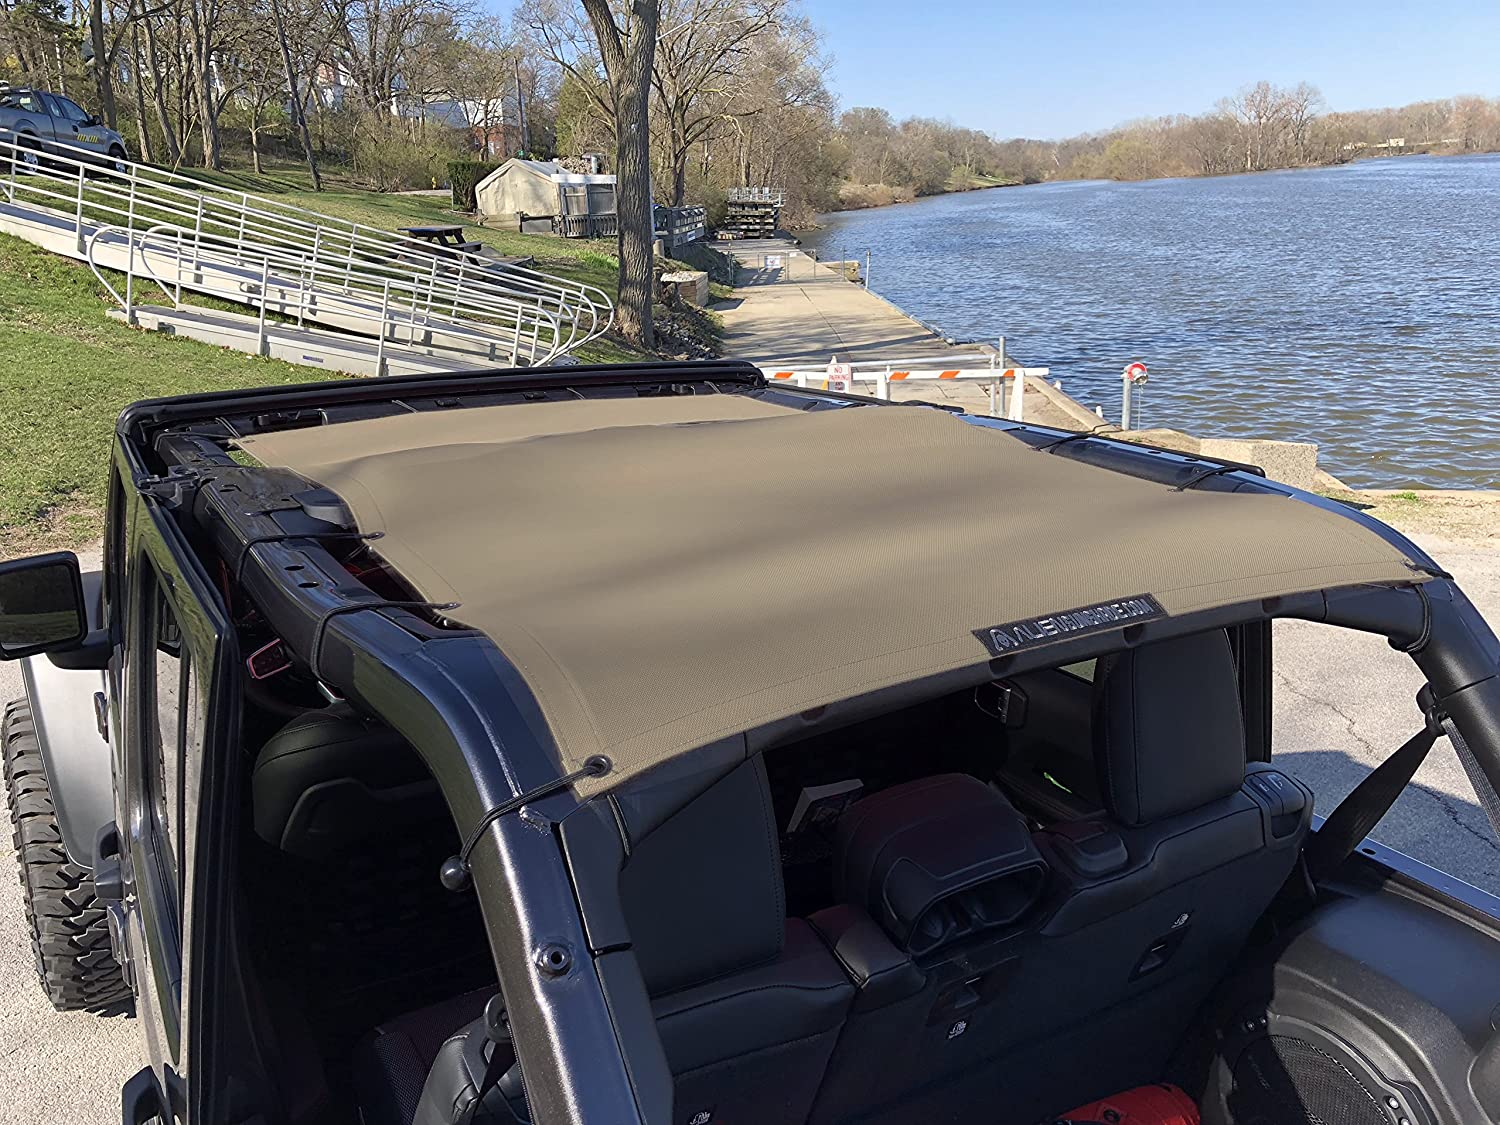 ALIEN SUNSHADE Jeep Wrangler 2018+ JLU Full Length Sun Shade Mesh top for 4-Door Unlimited Blocks Harmful UV Rays